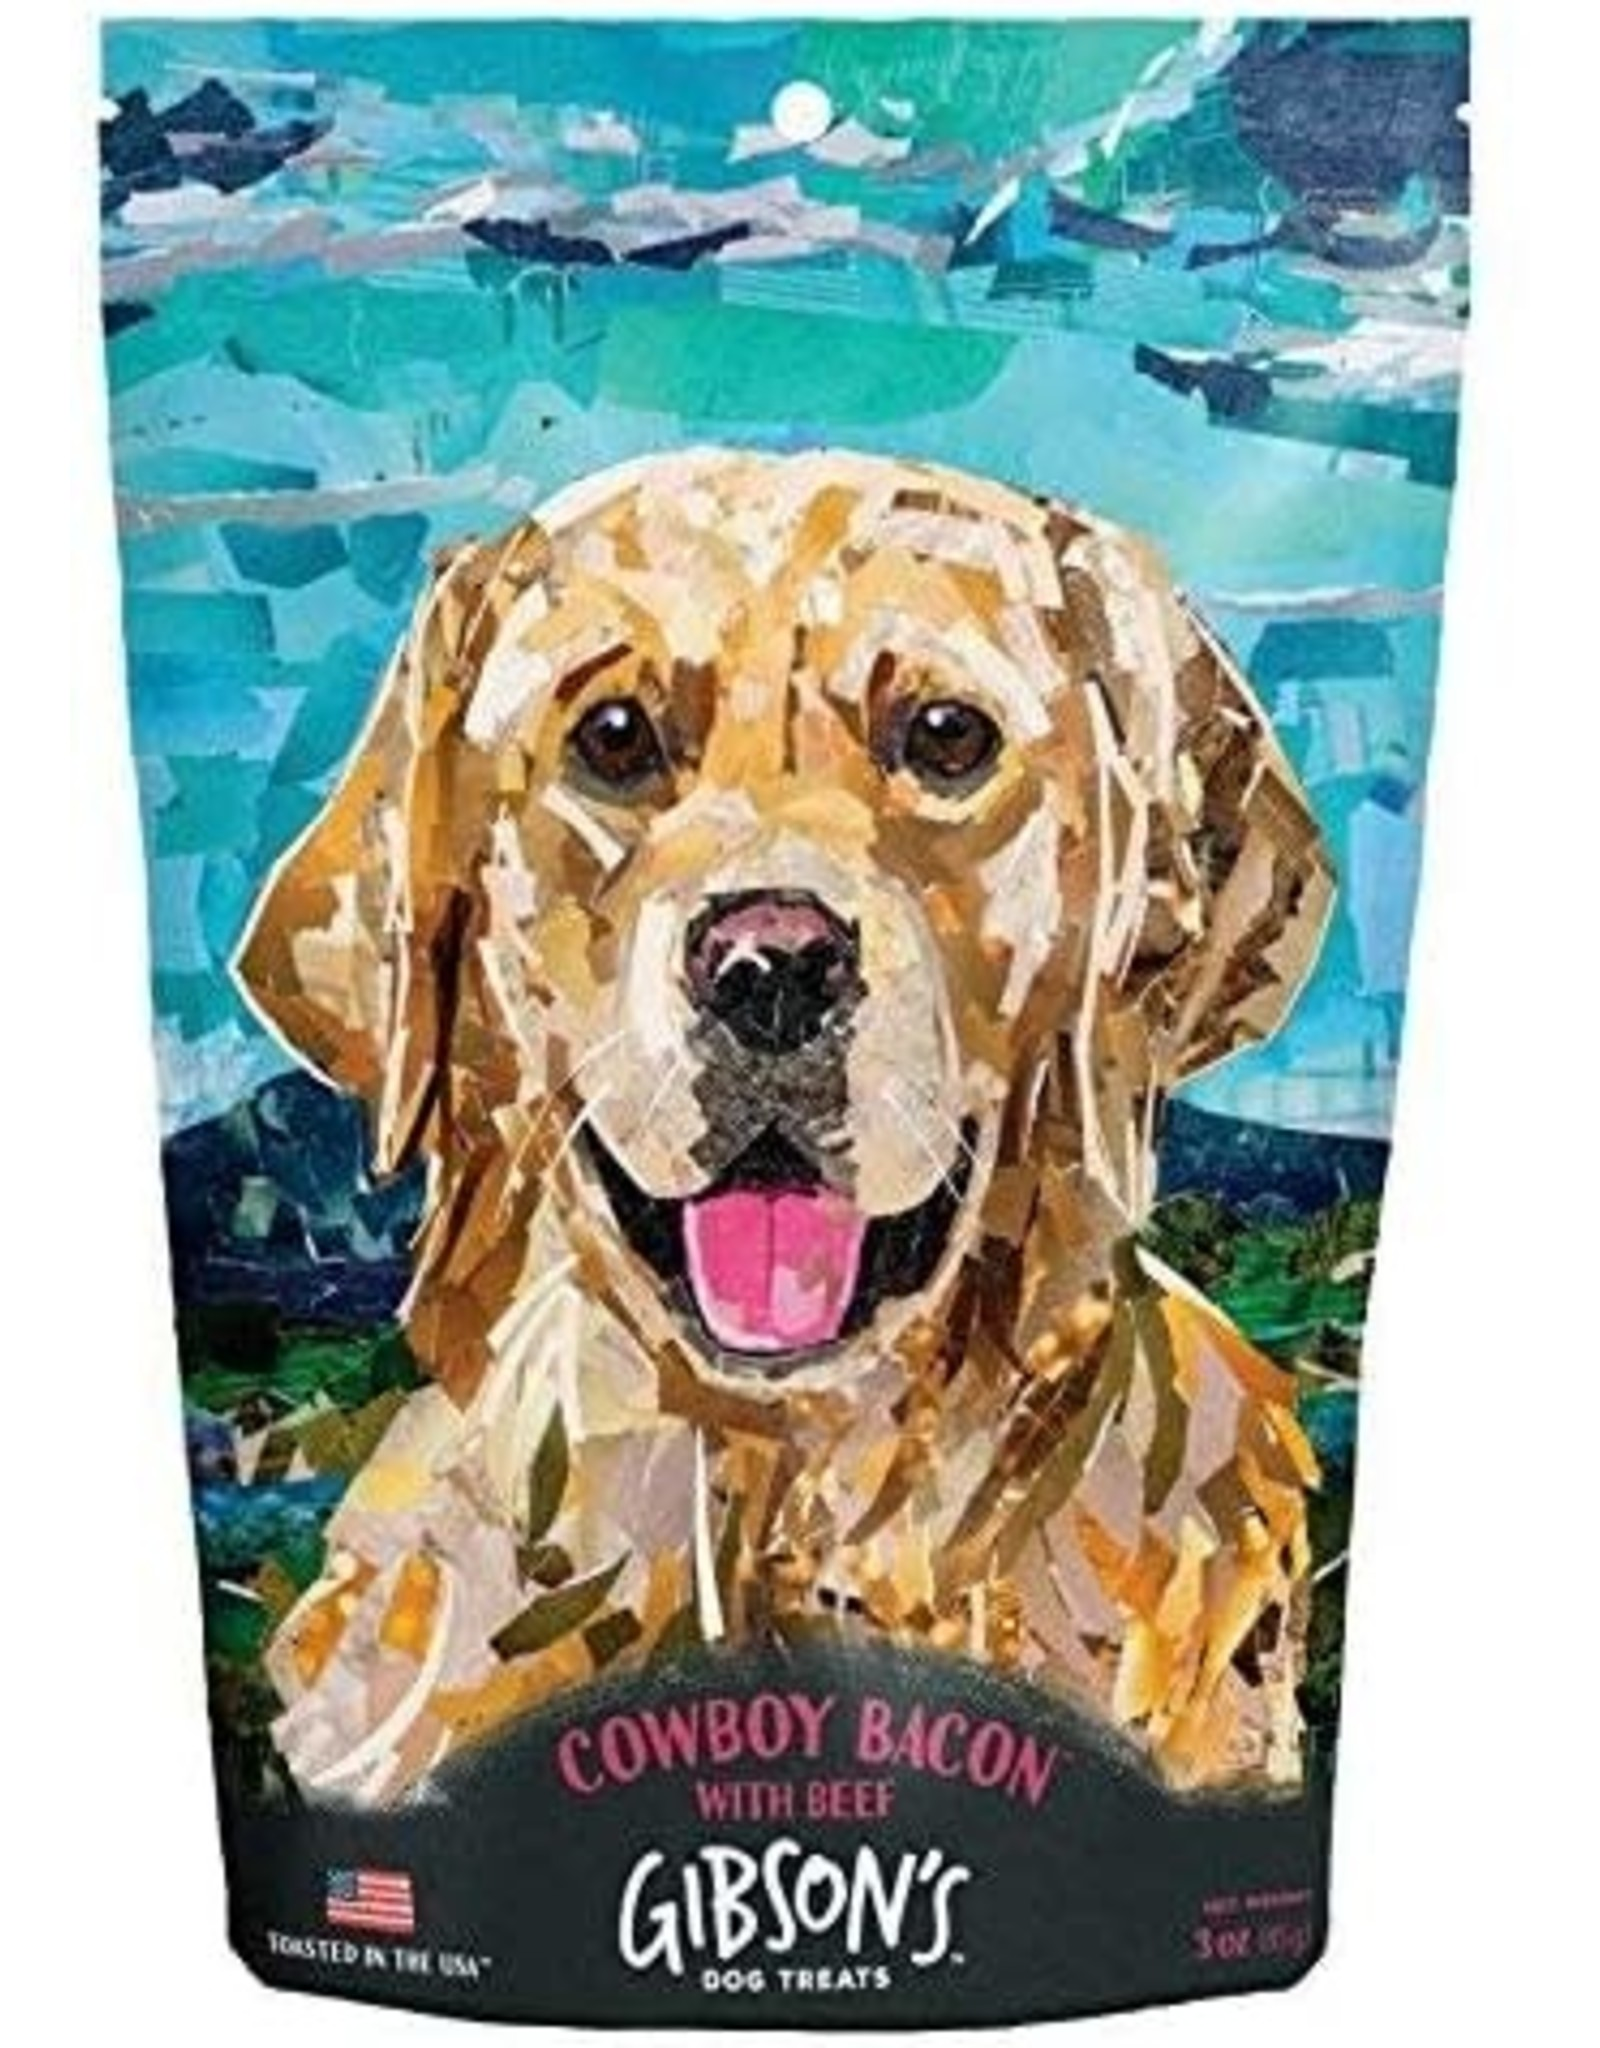 Wild Meadow Farms Gibsons Toasted: Cowboy Bacon with Beef, 3oz